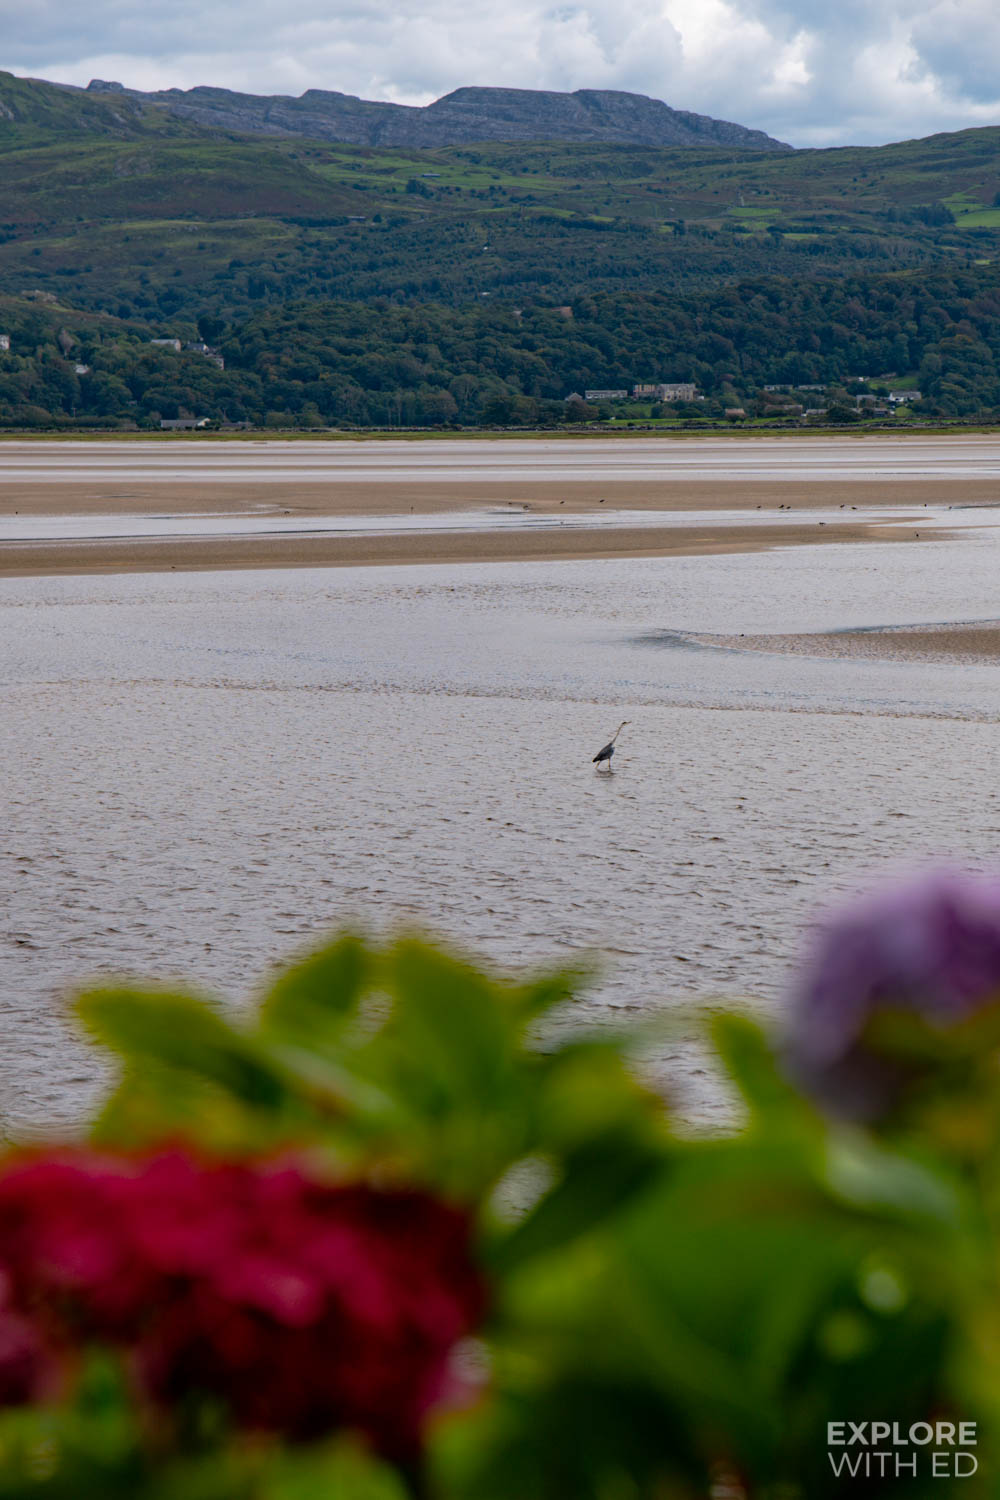 Portmeirion Estuary and wildlife